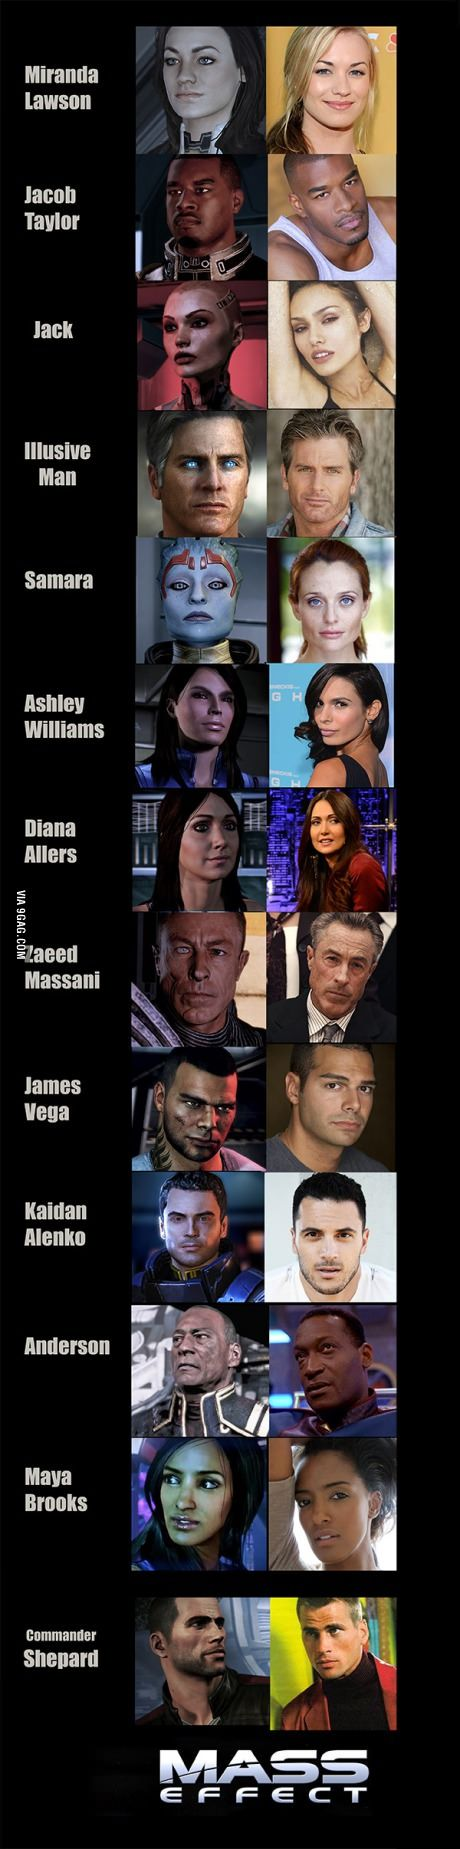 Mass Effect Face Actors. James and Kaidan face actors are invited to come and marry me.